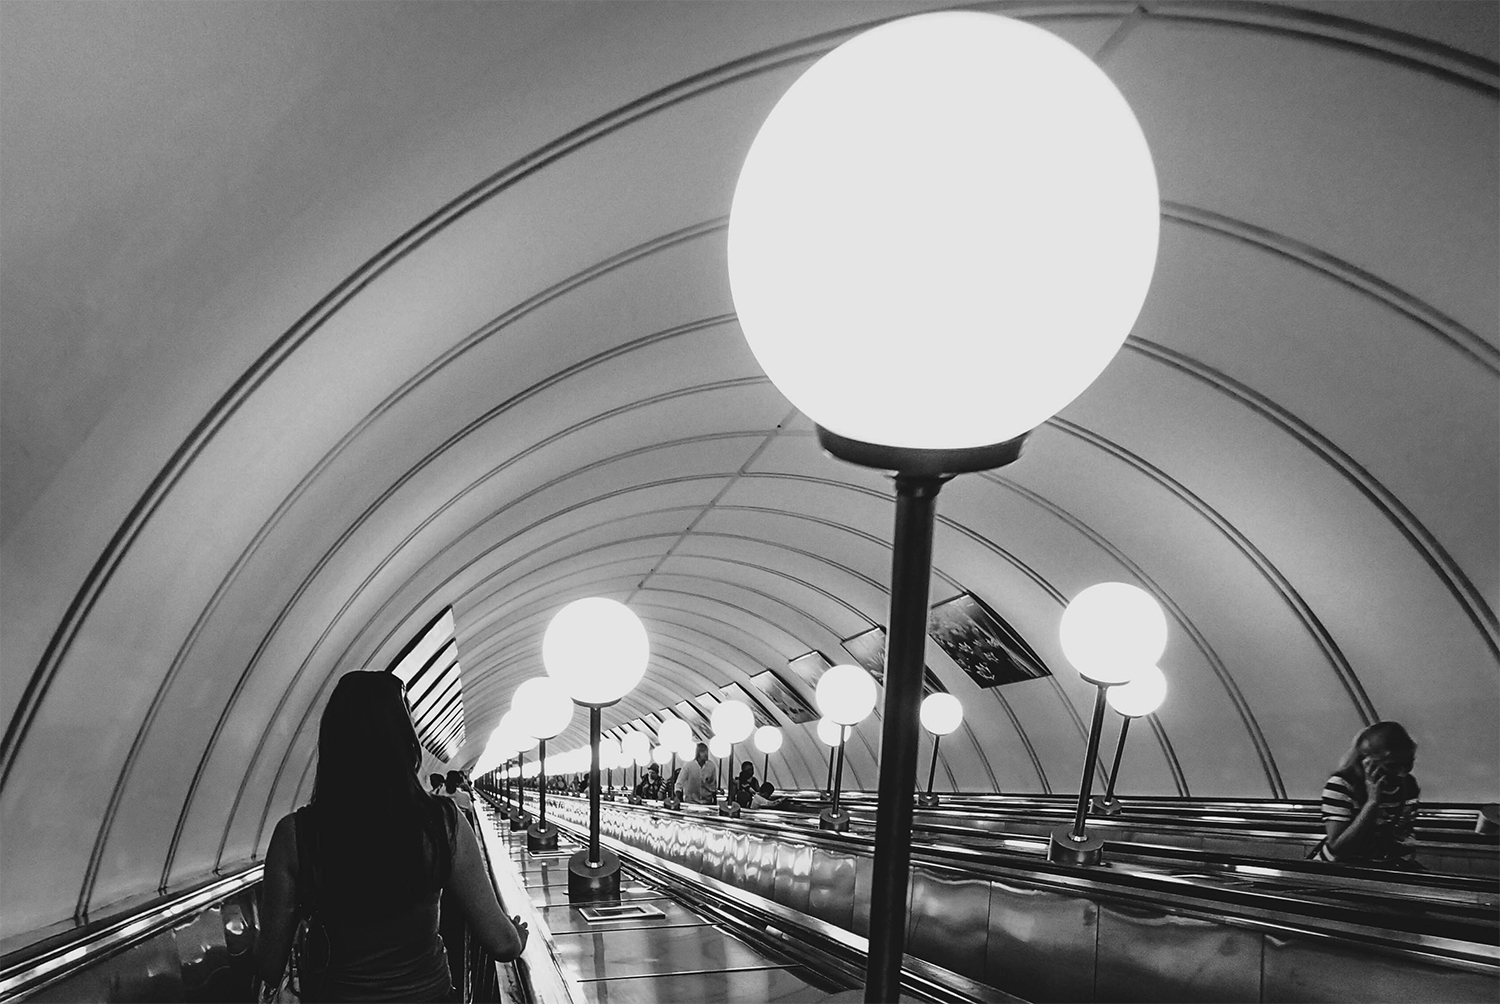 <p>Passengers descending into and ascending out of one of Moscow's very deep metro stations.</p>